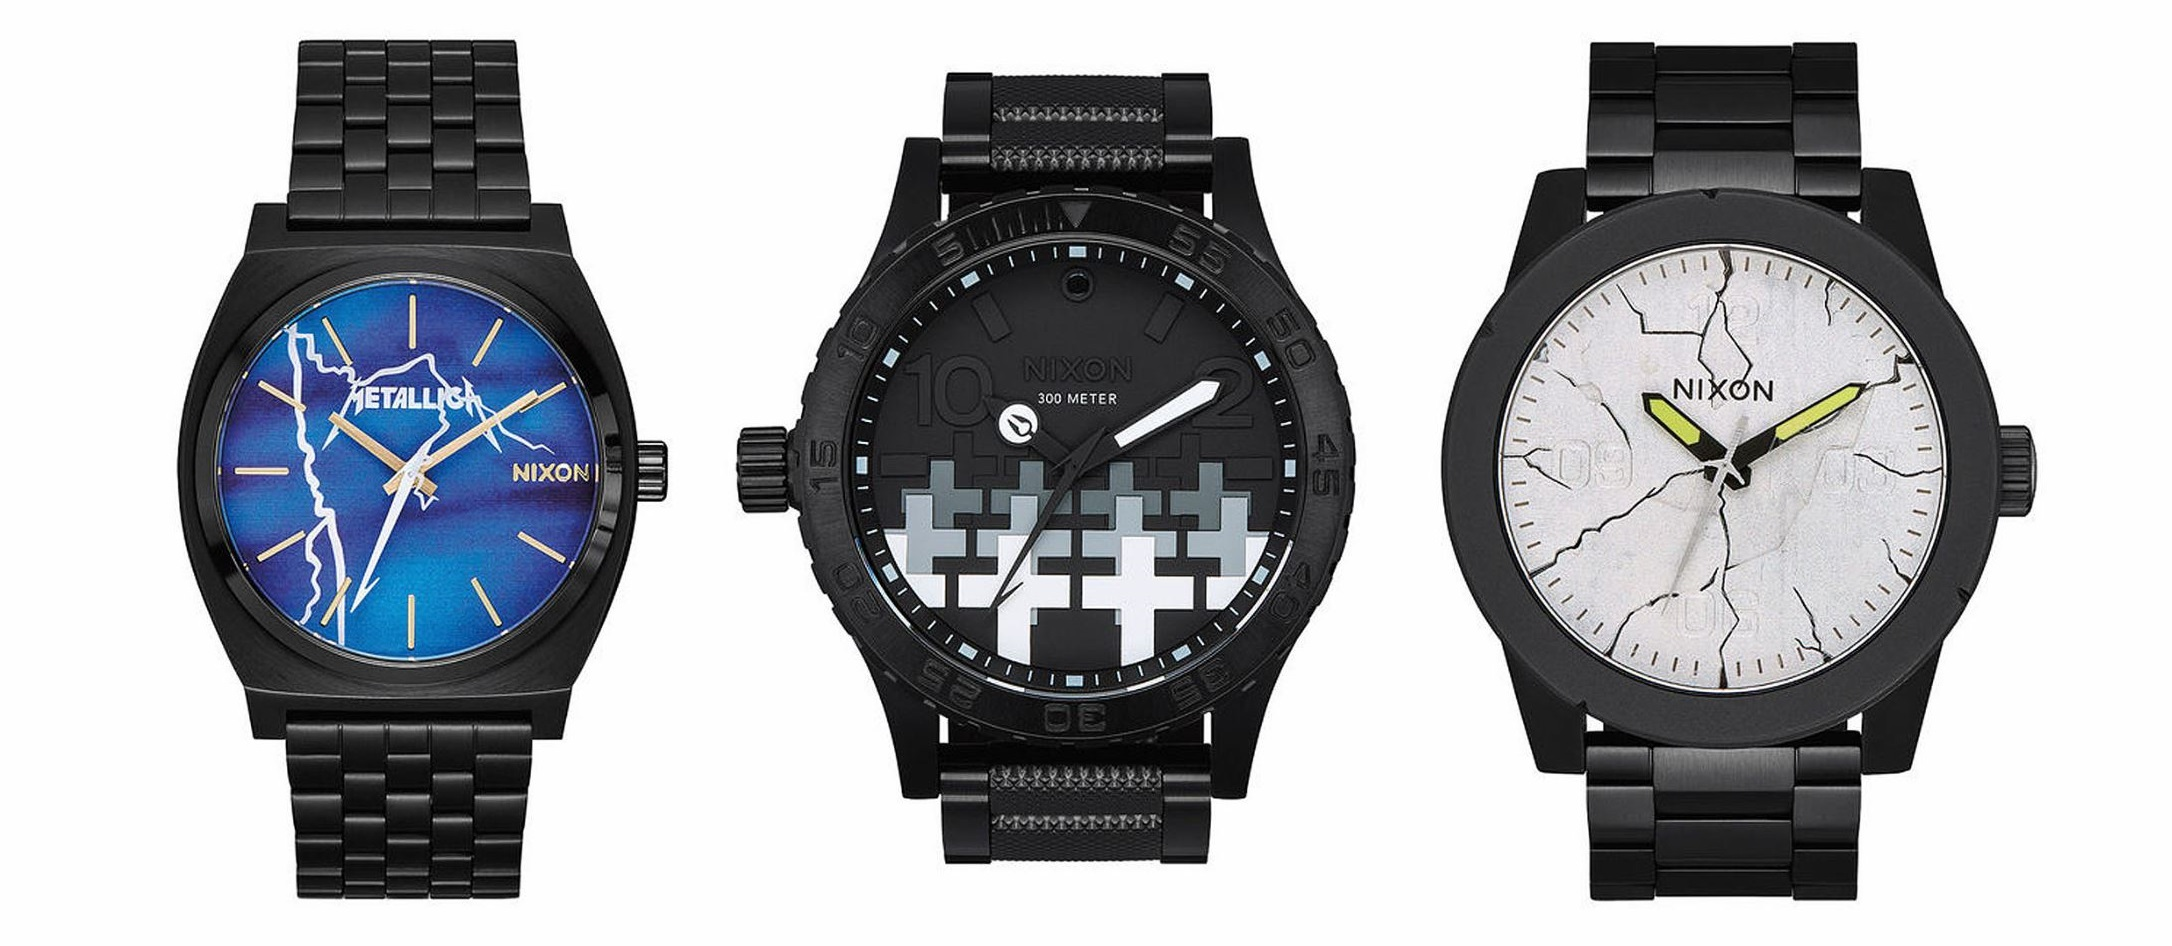 Nixon Watches Metallica Watches By Nixon Designs Inspired By Album Art And